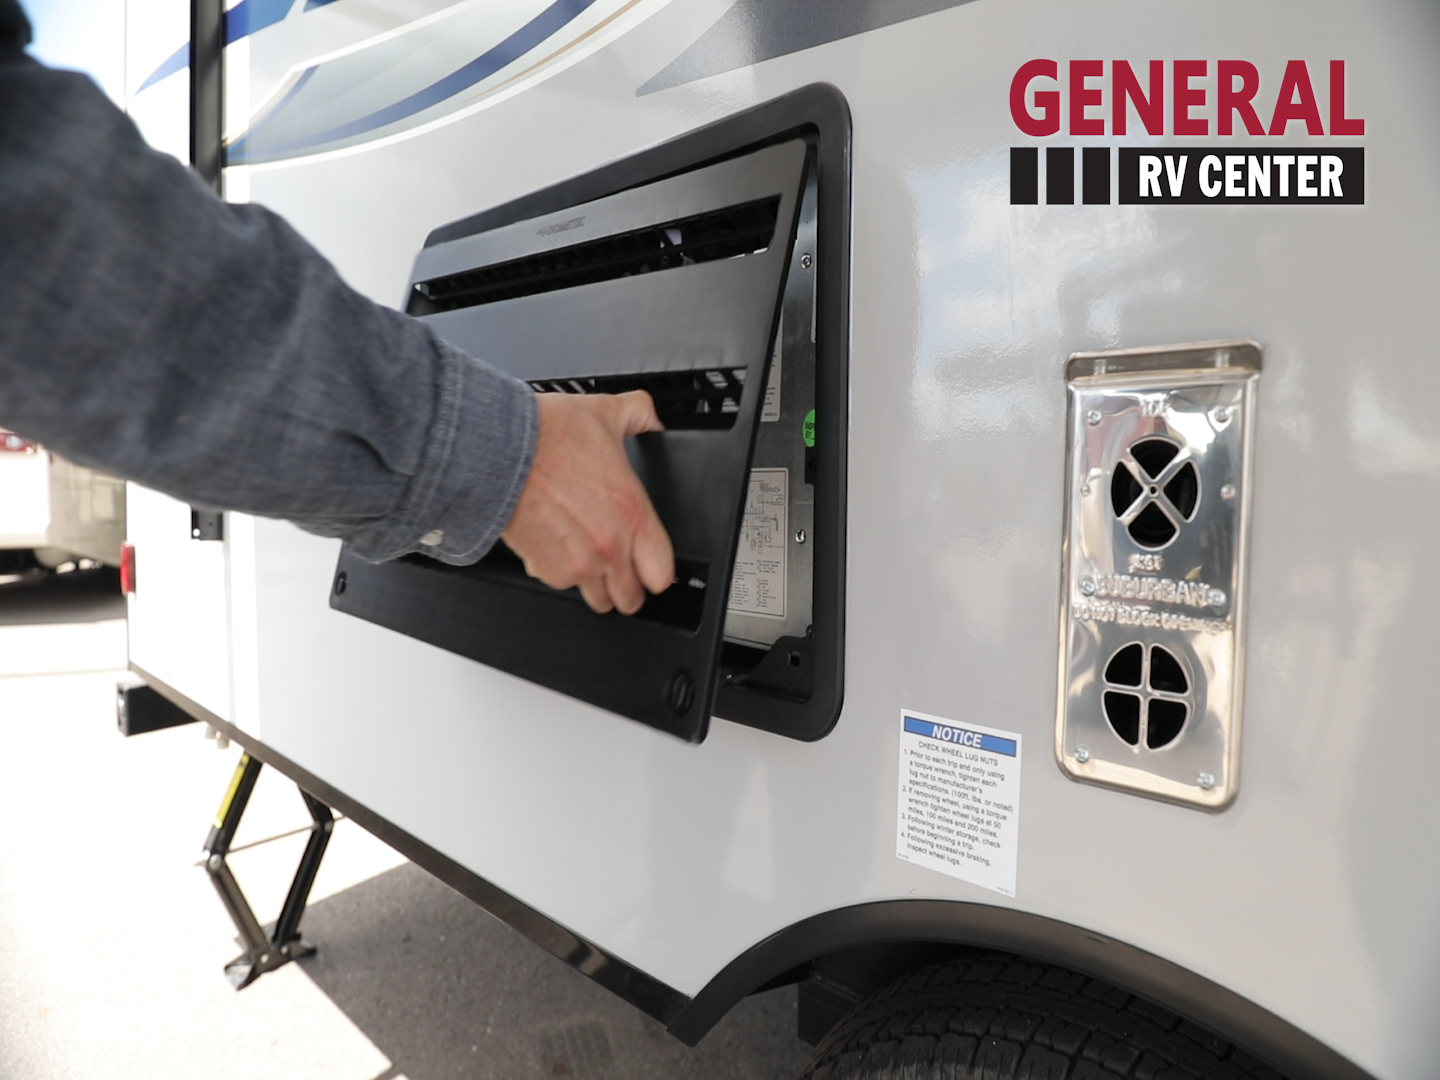 Install RV Insect Screen on RV Refrigerator Vent